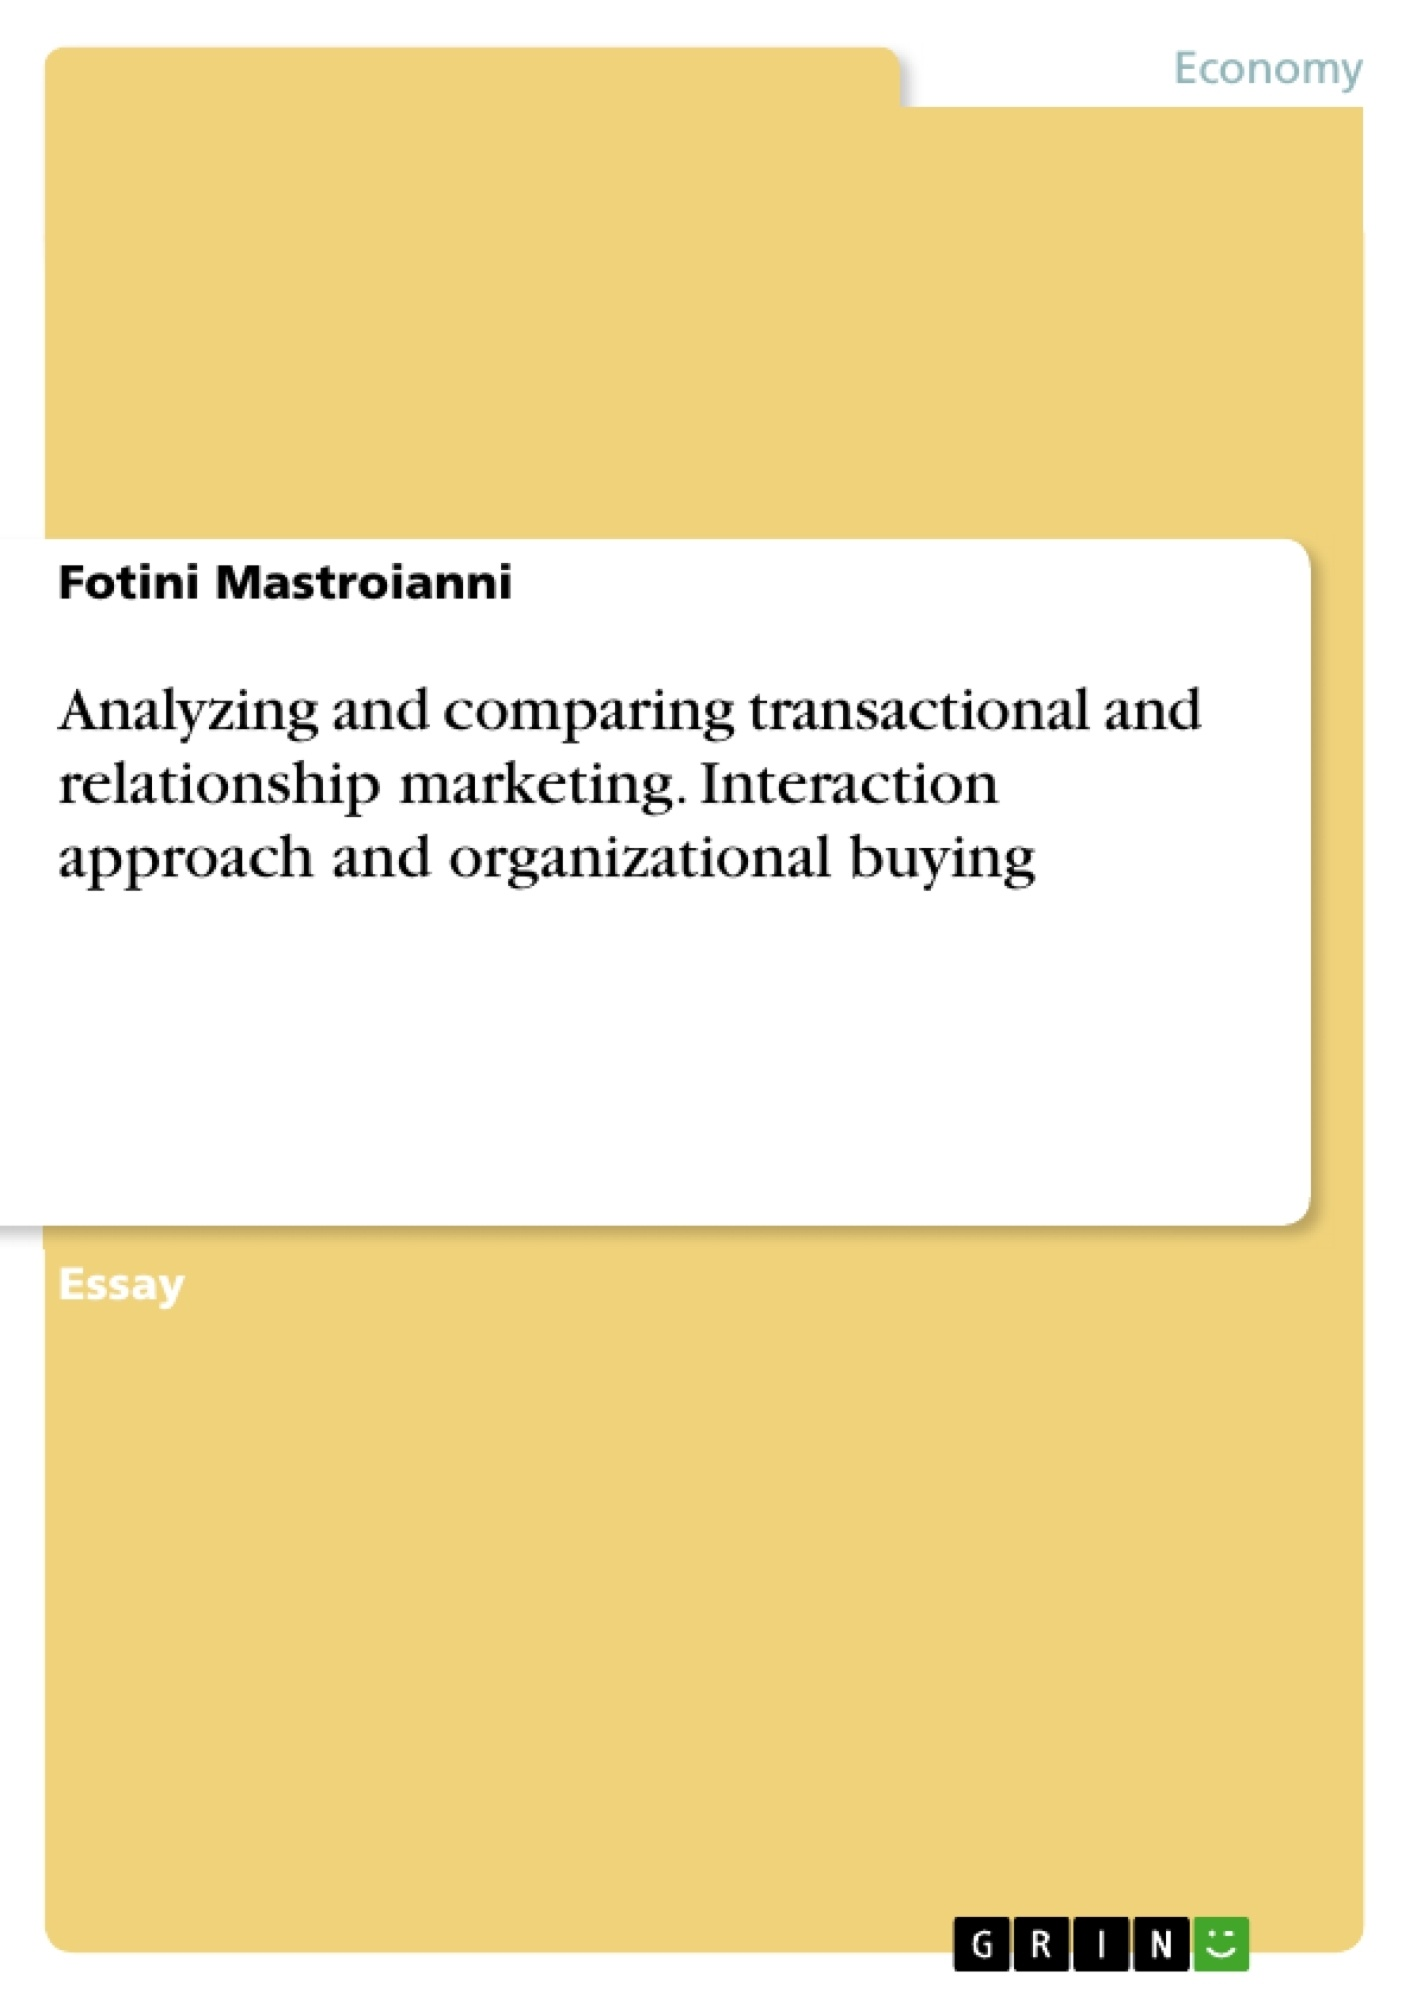 Title: Analyzing and comparing transactional and relationship marketing. Interaction approach and organizational buying